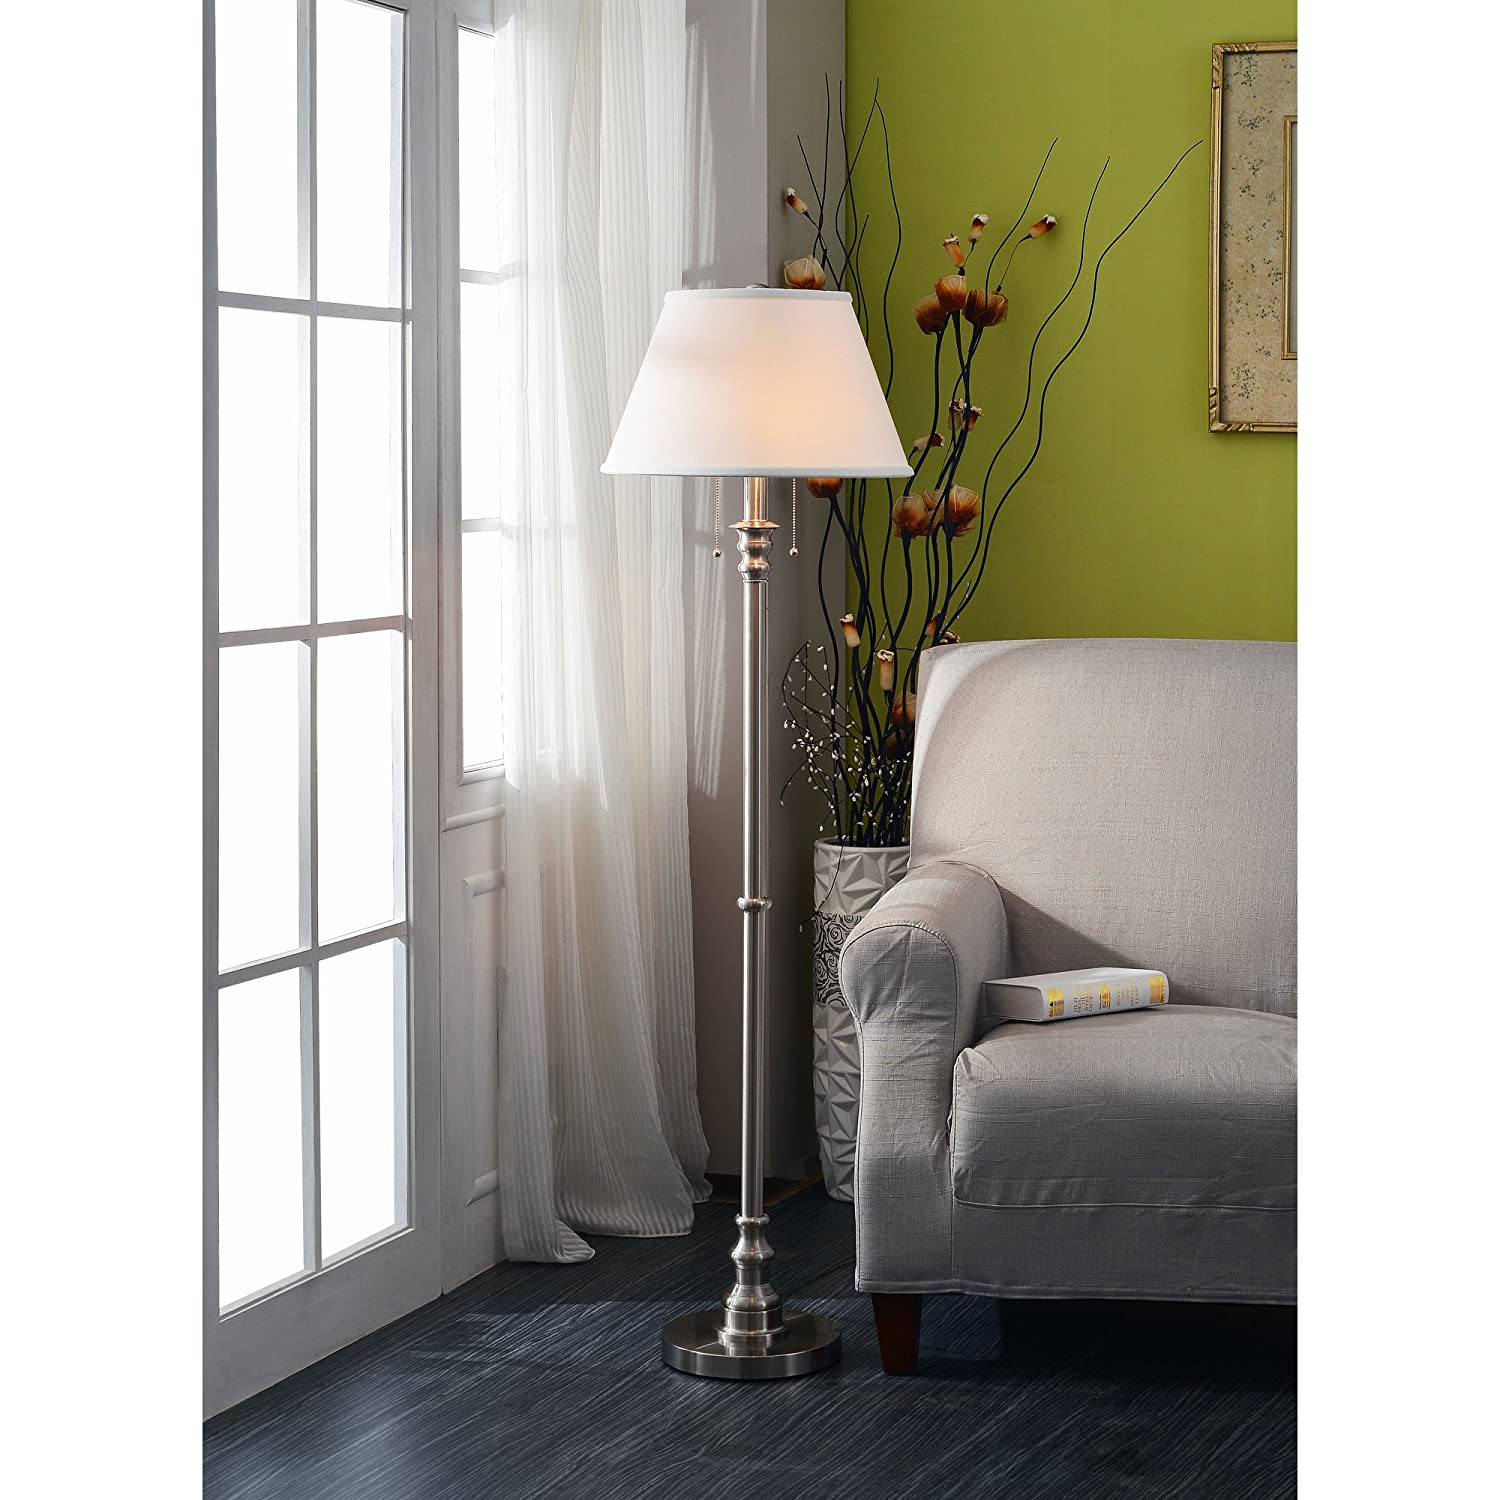 Amazon white floor lamp nursery - Kenroy Home 30438bs Spyglass Floor Lamp Brushed Steel Tools Home Amazon Com